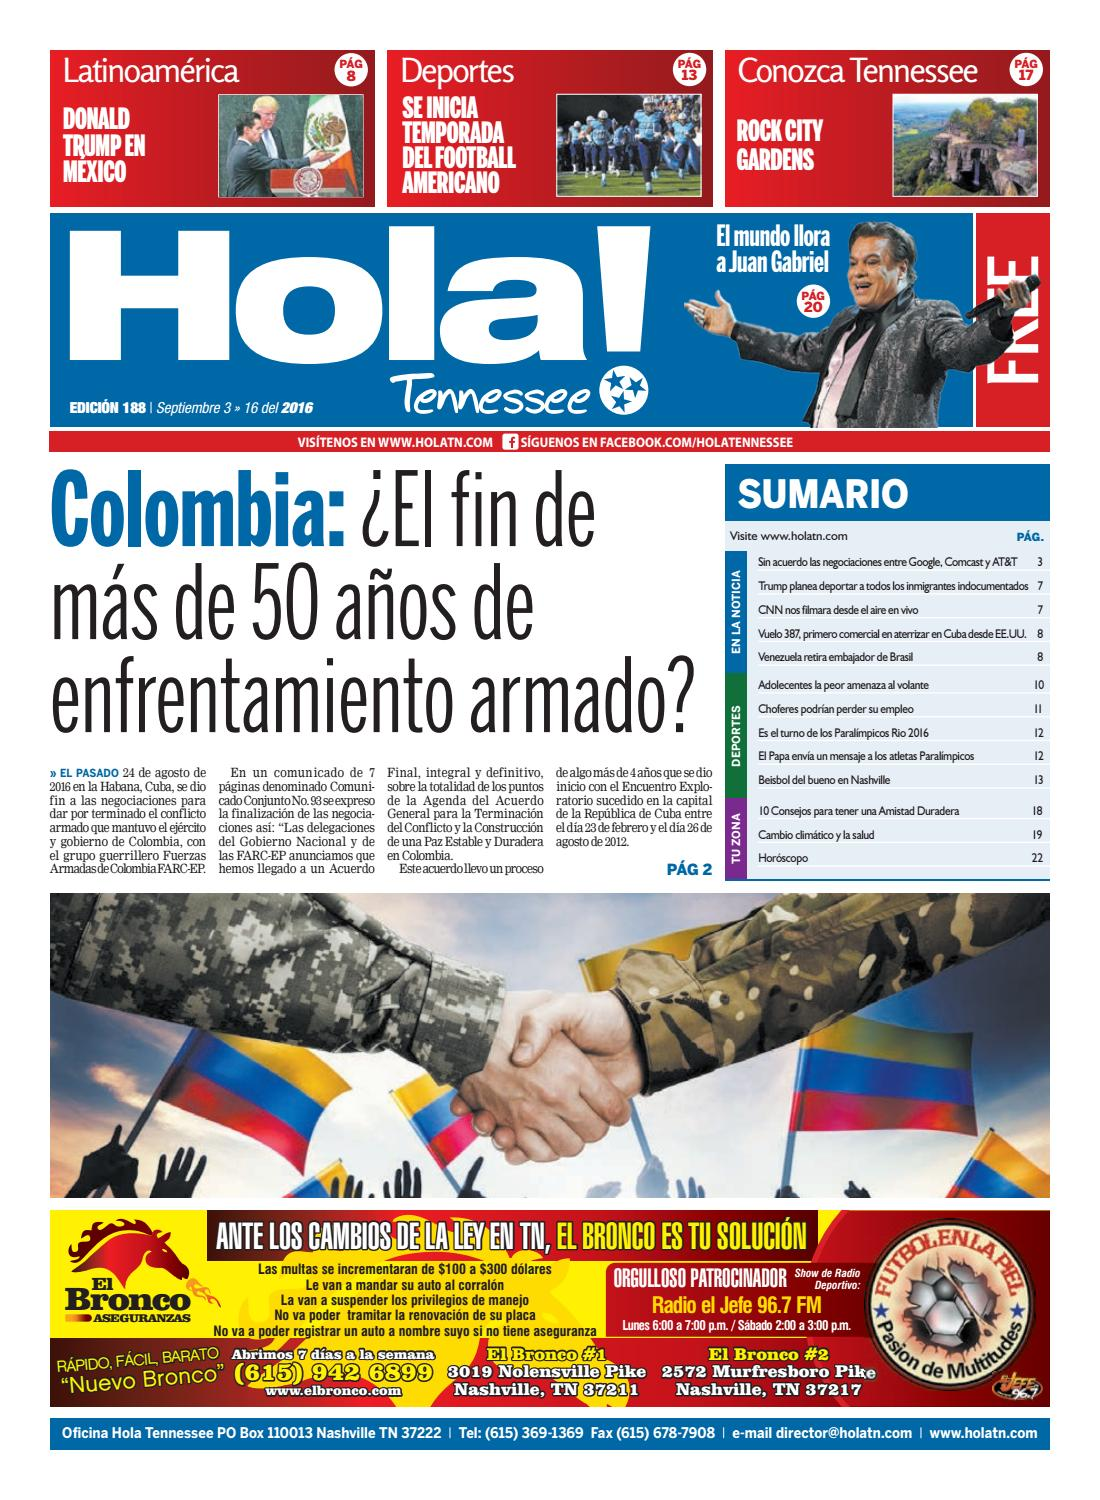 Hola TN - Ed. 188 by Hola Tennessee Newspaper - issuu